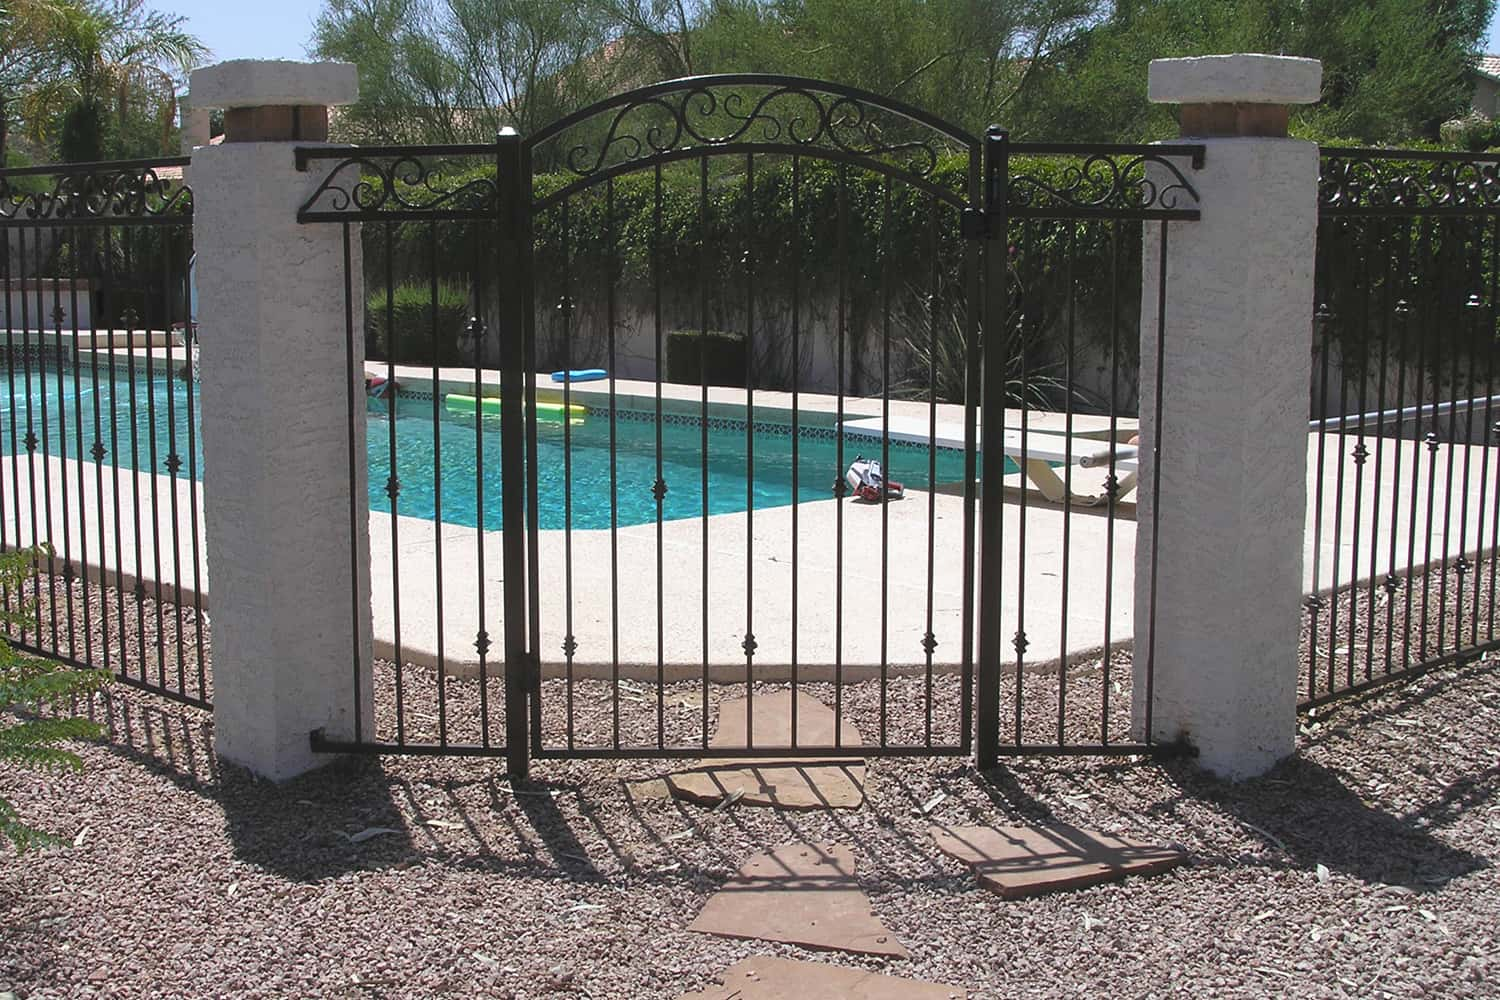 3-Rail Pool Fence with Arched Decorative Gate & Decorative Iron Pool Fencing Examples | Sun King Fencing